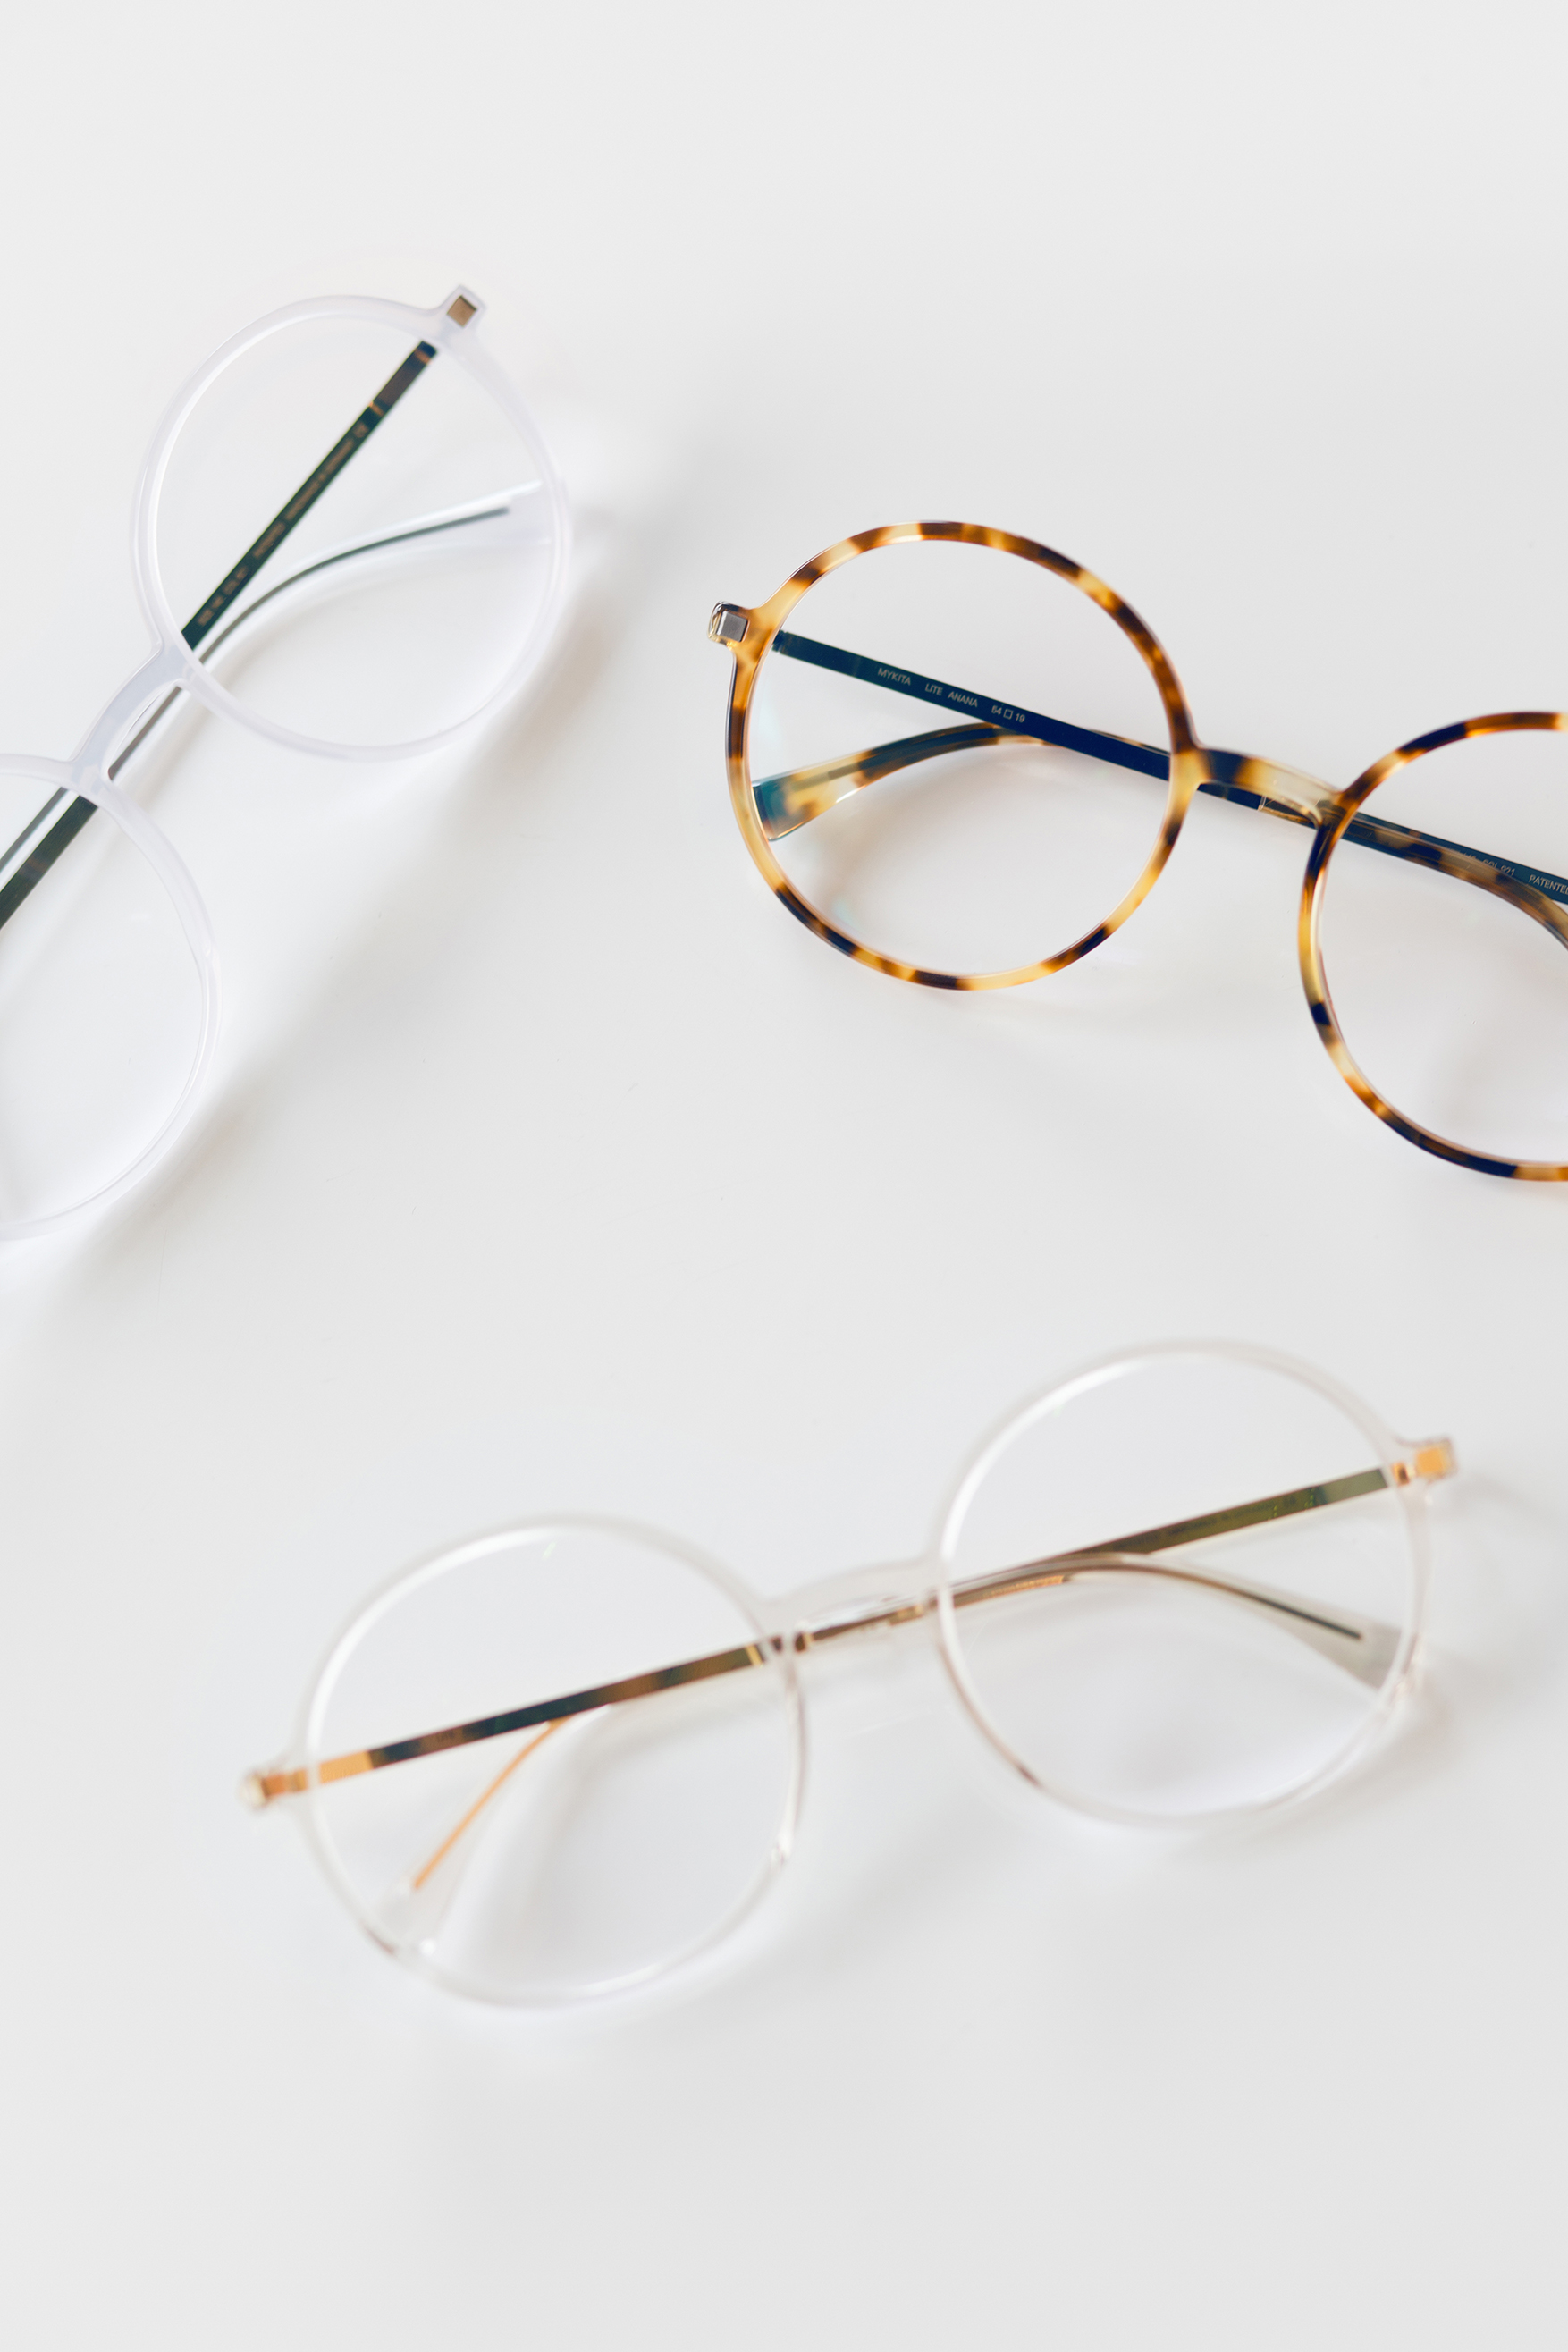 Mykita Glasses | Mykita Martin | Korean Glasses Frames